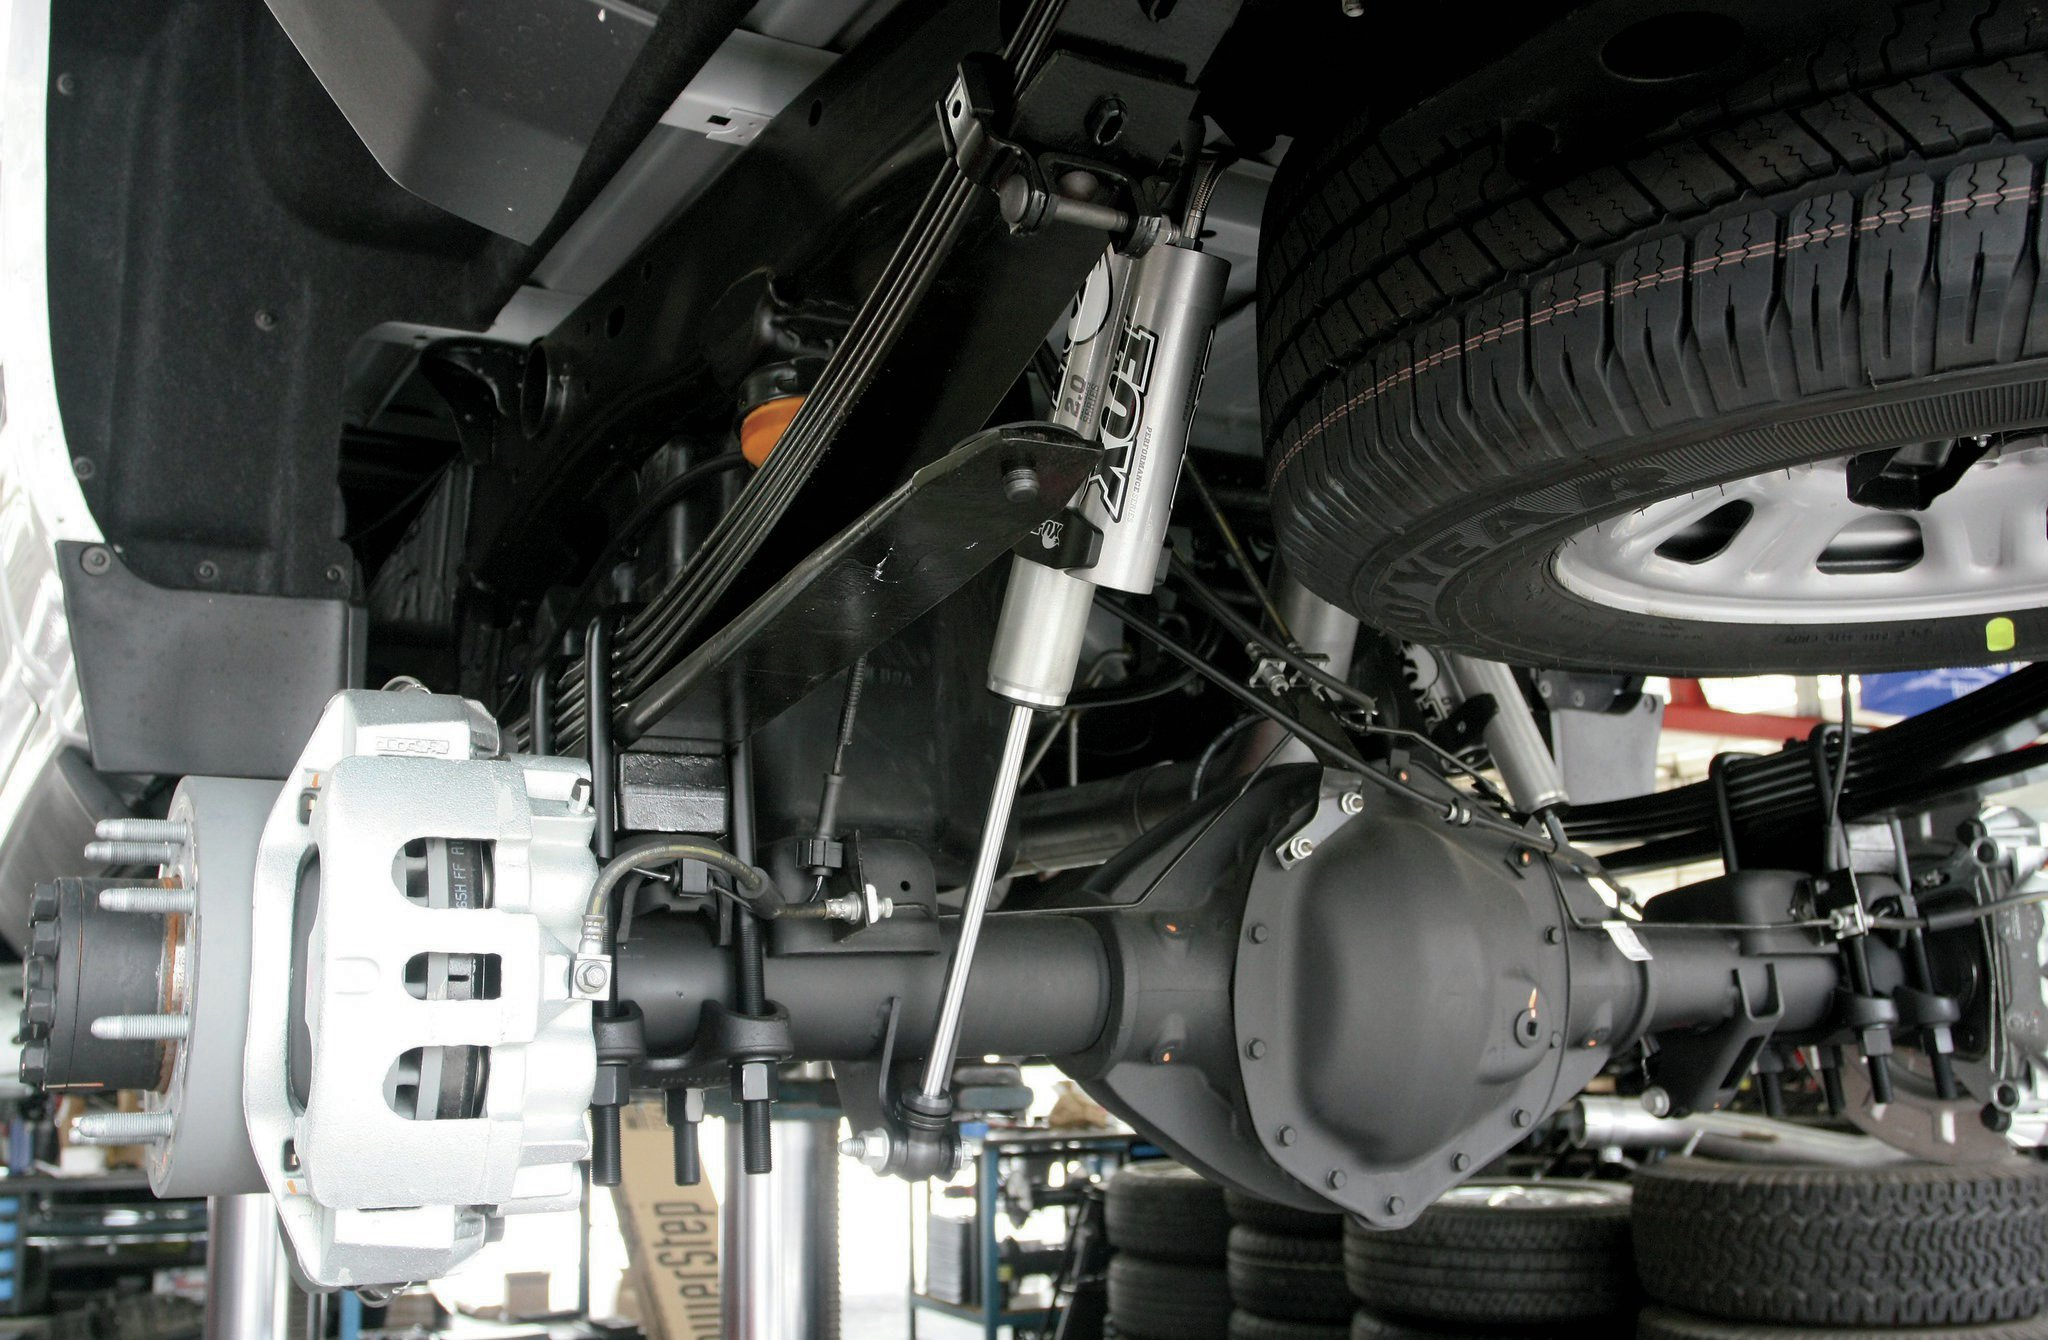 The Fox rear shocks are installed, and the truck will eventually go onto the alignment rack.